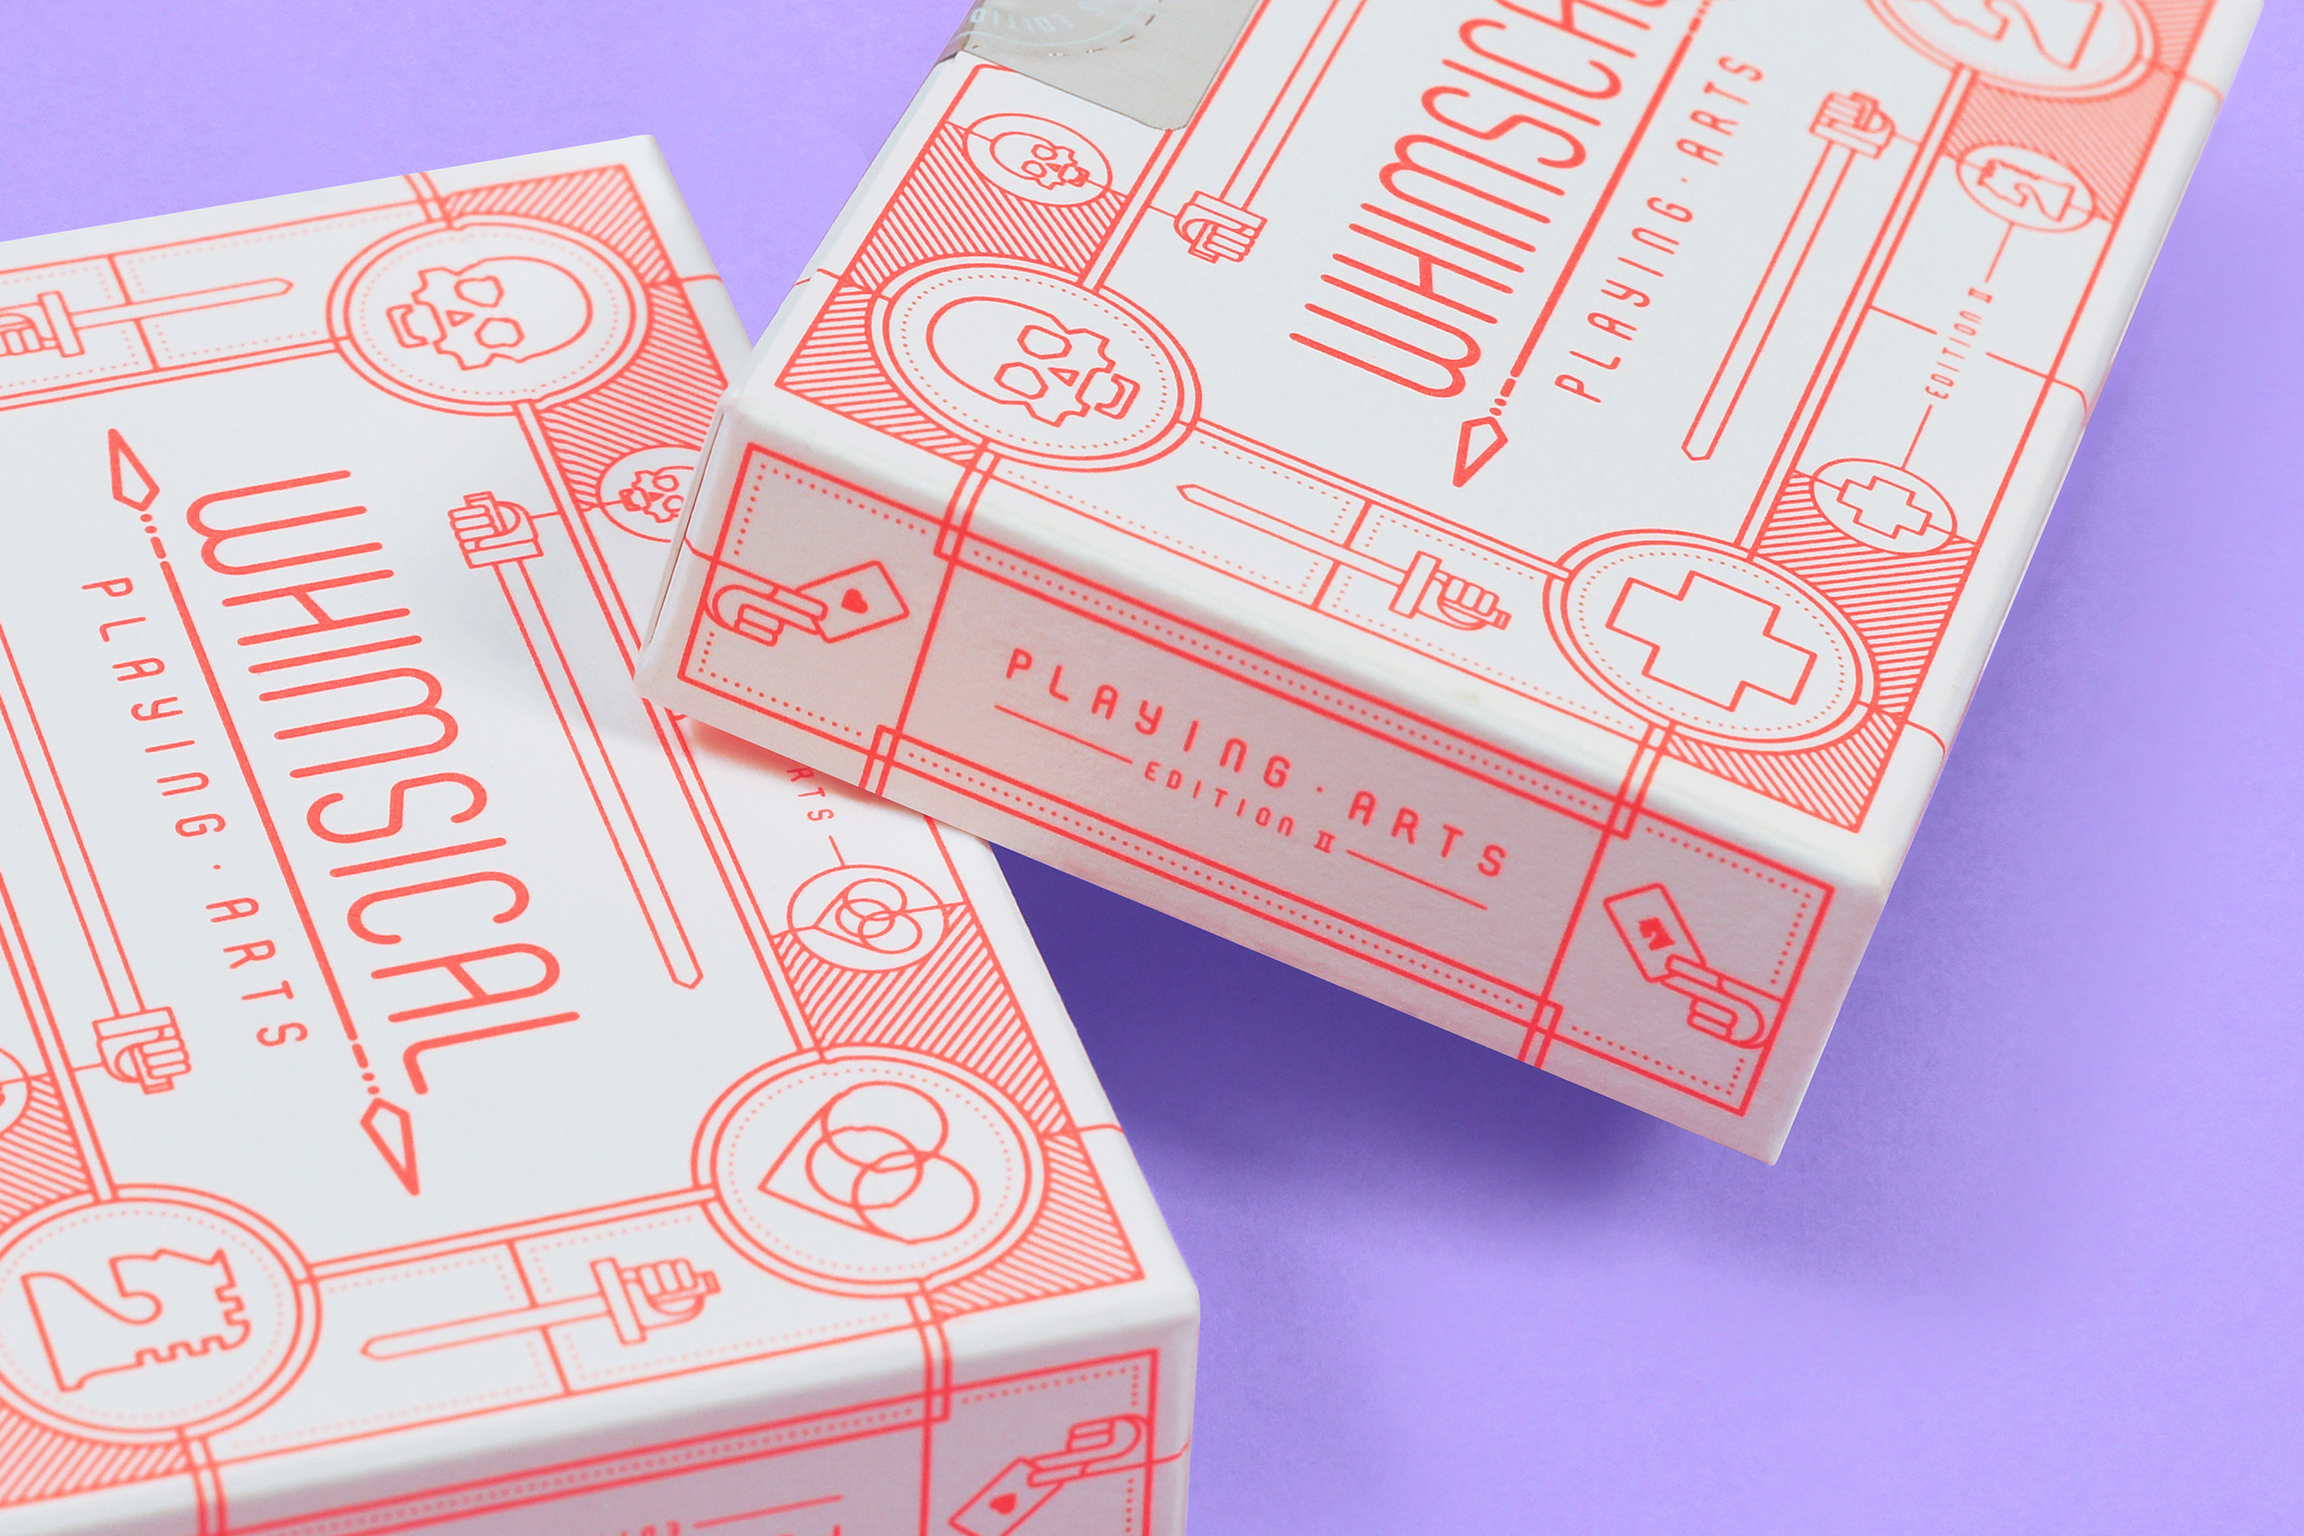 Whimsical Playing Arts with Minimalist and Eye-Catching Packaging Design / World Brand & Packaging Design Society